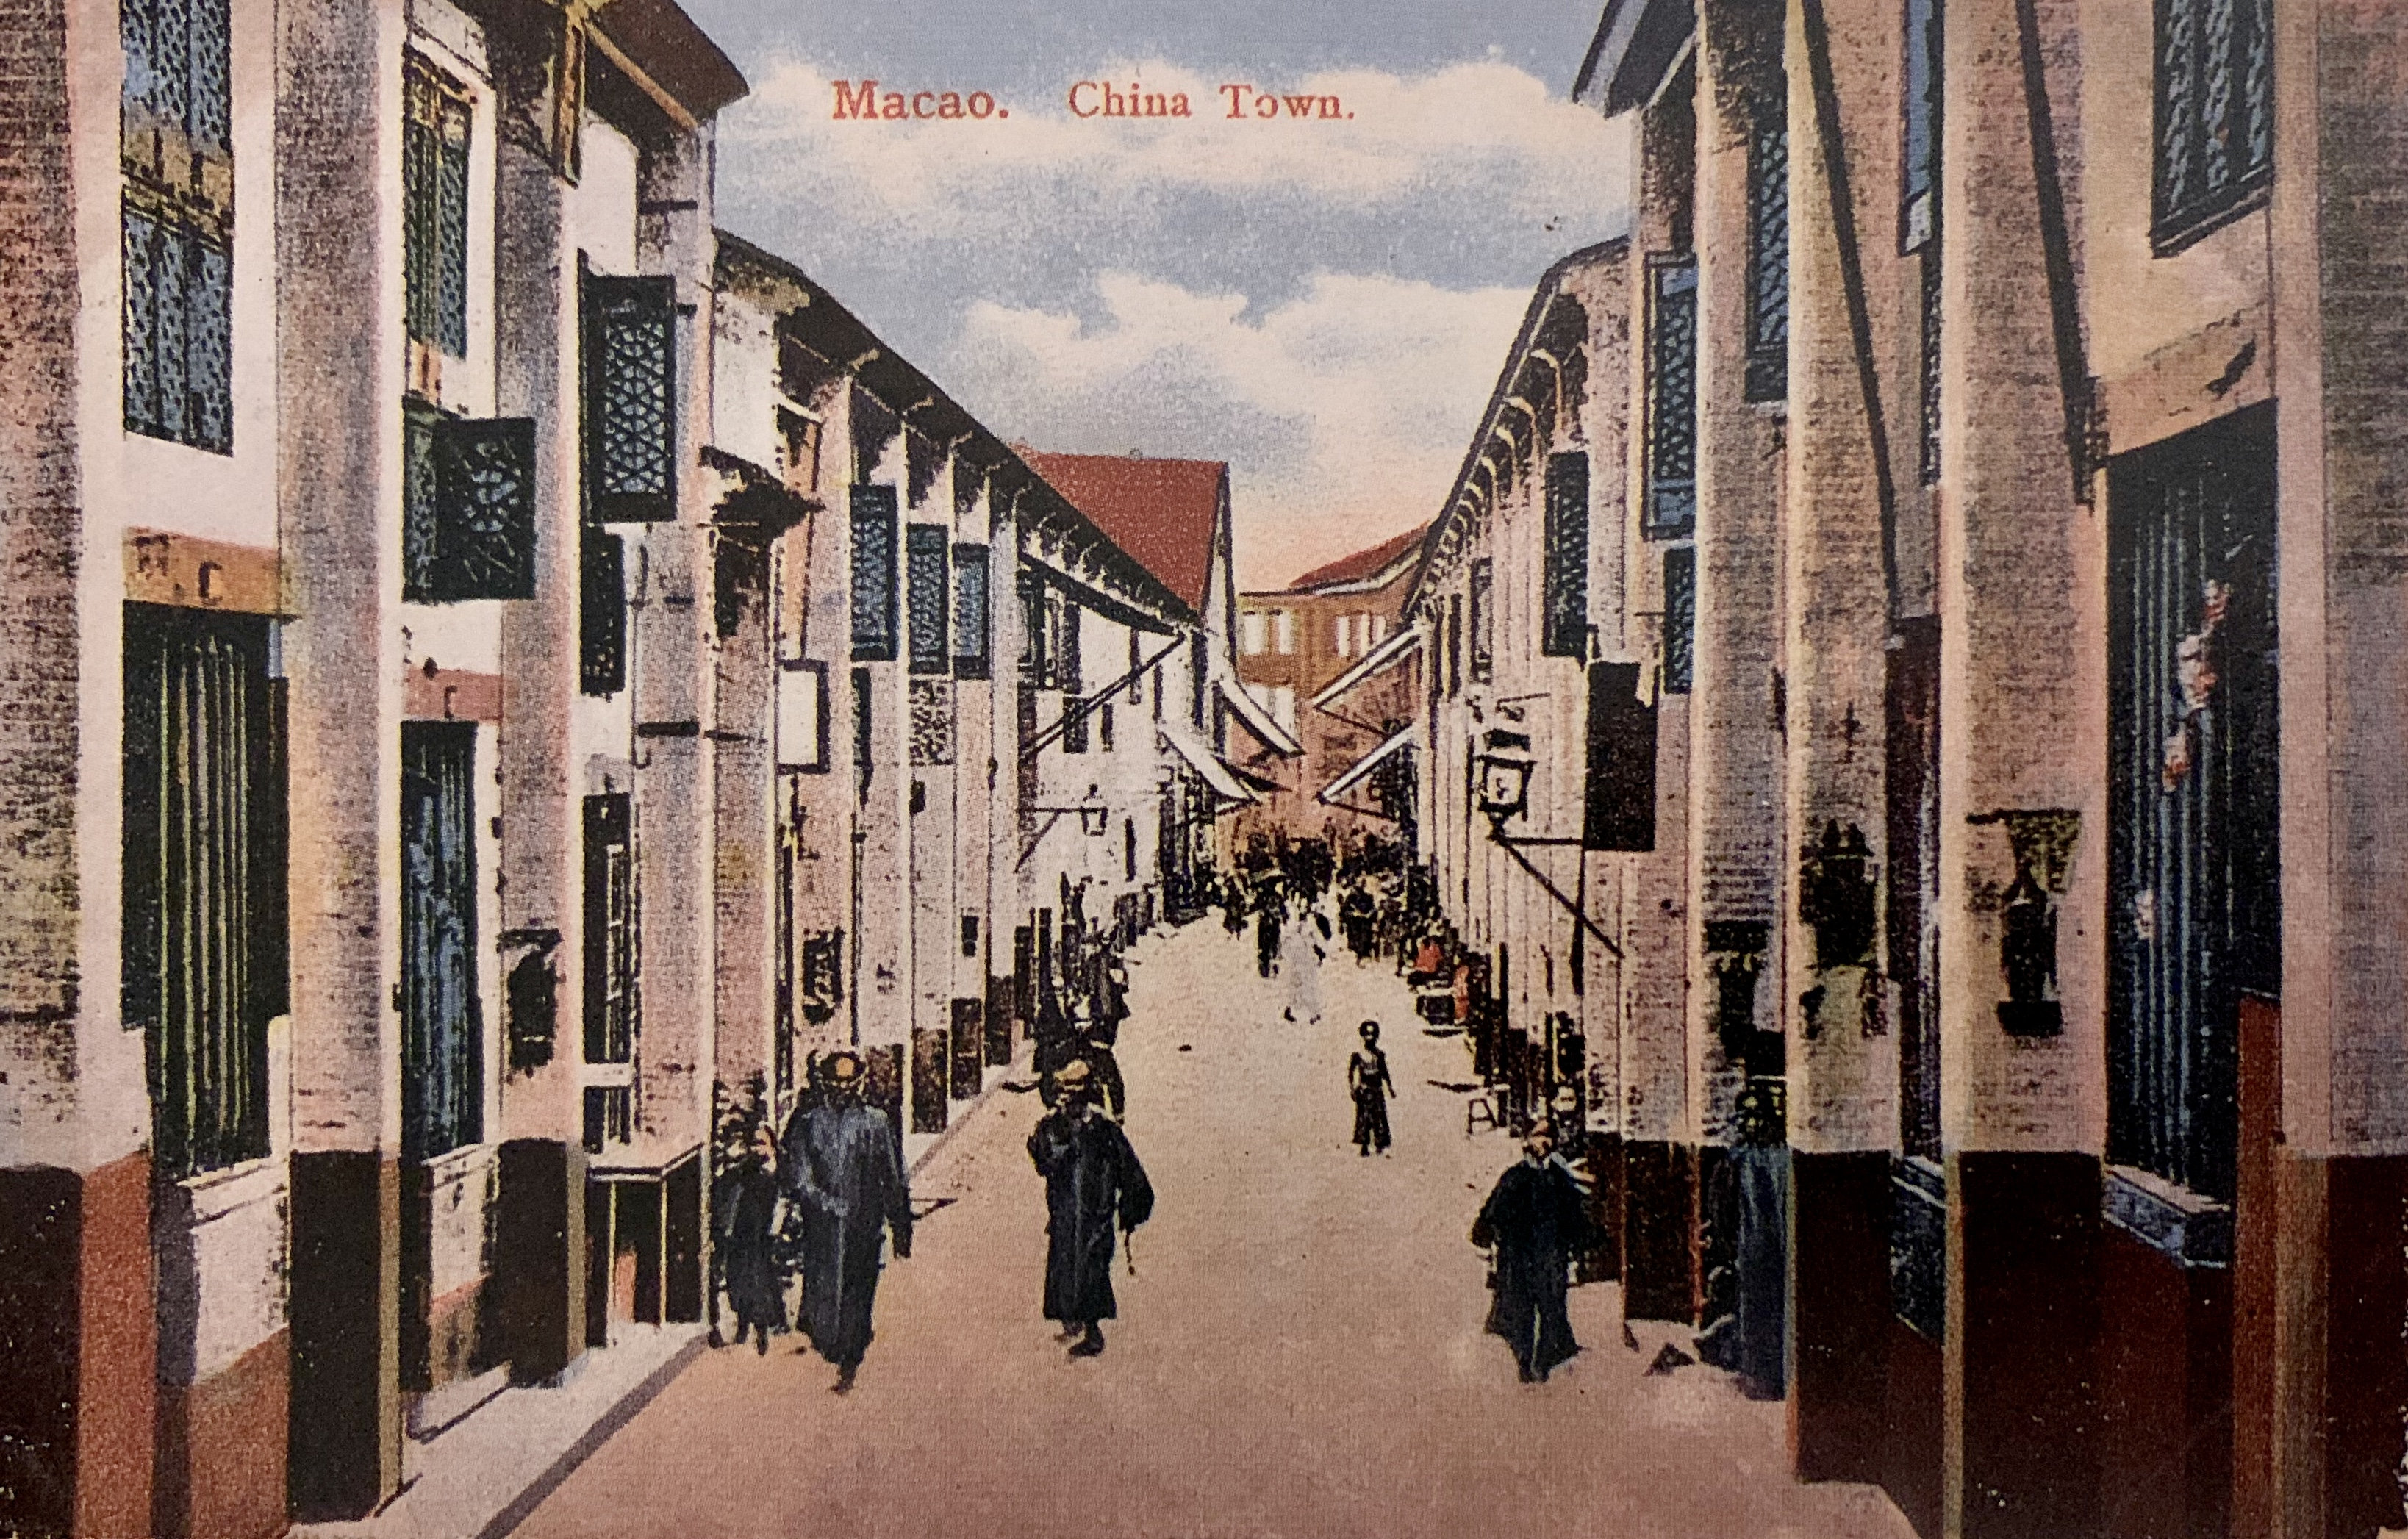 Rua da Felicidade circa 1900 source The Past of Macau Collection of Postcards by Ho Weng Hong